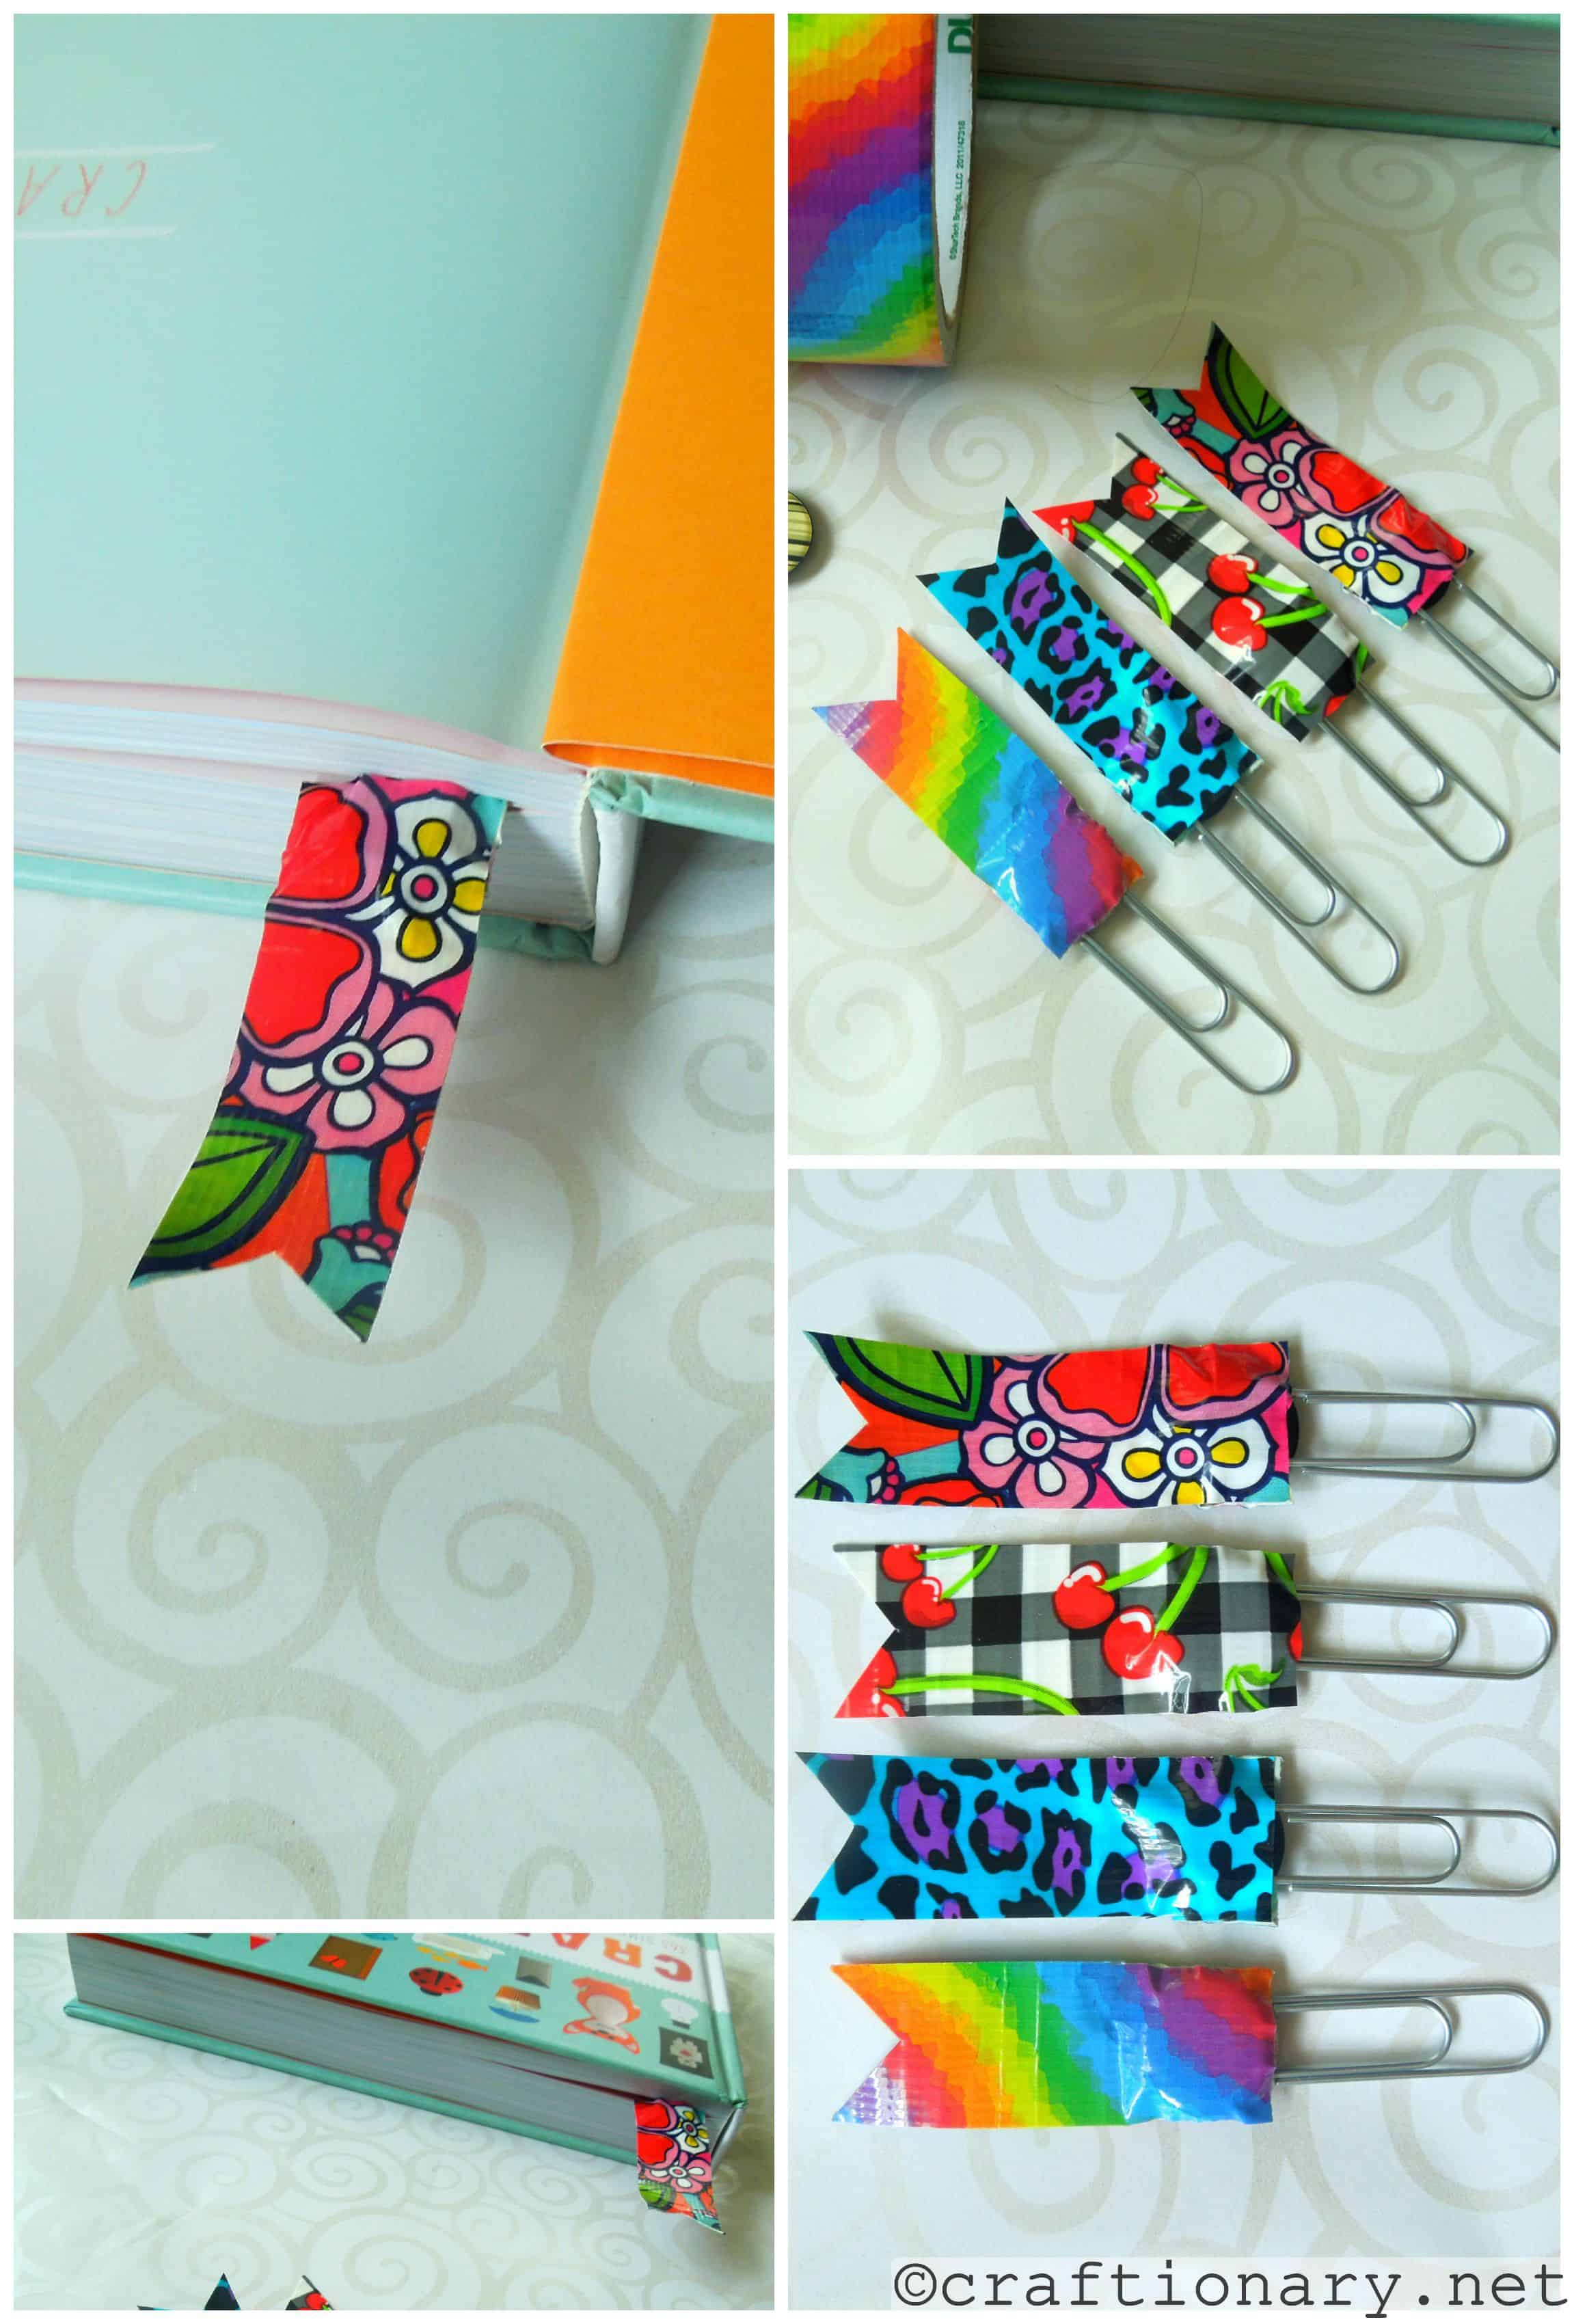 Patterned duct tape and paper clip bookmarks